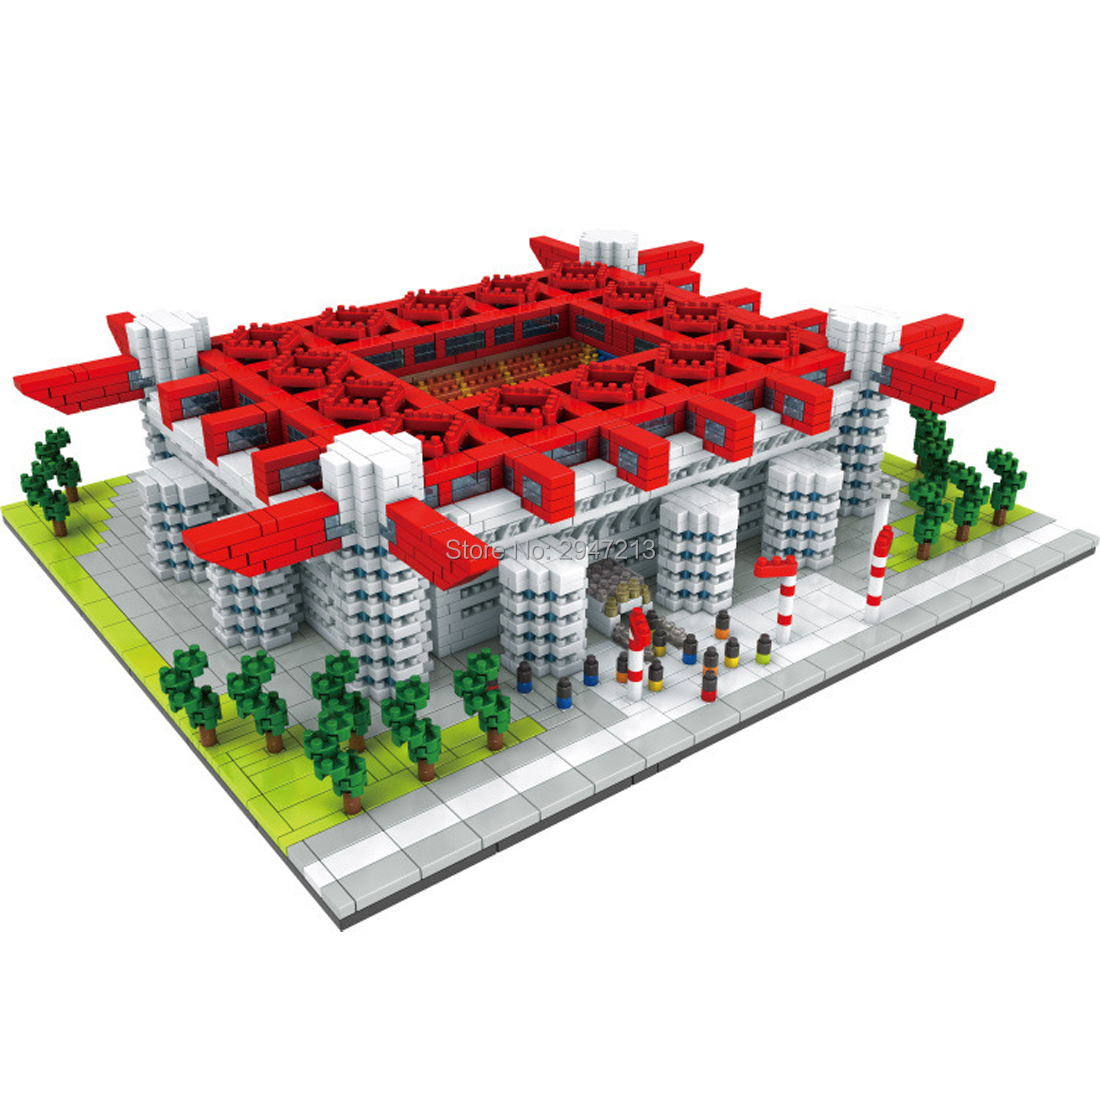 hot Lepining city classic creators architecture <font><b>inter</b></font> AC <font><b>Milan</b></font> San Siro <font><b>Soccer</b></font> field model mini micro diamond block brick toys image